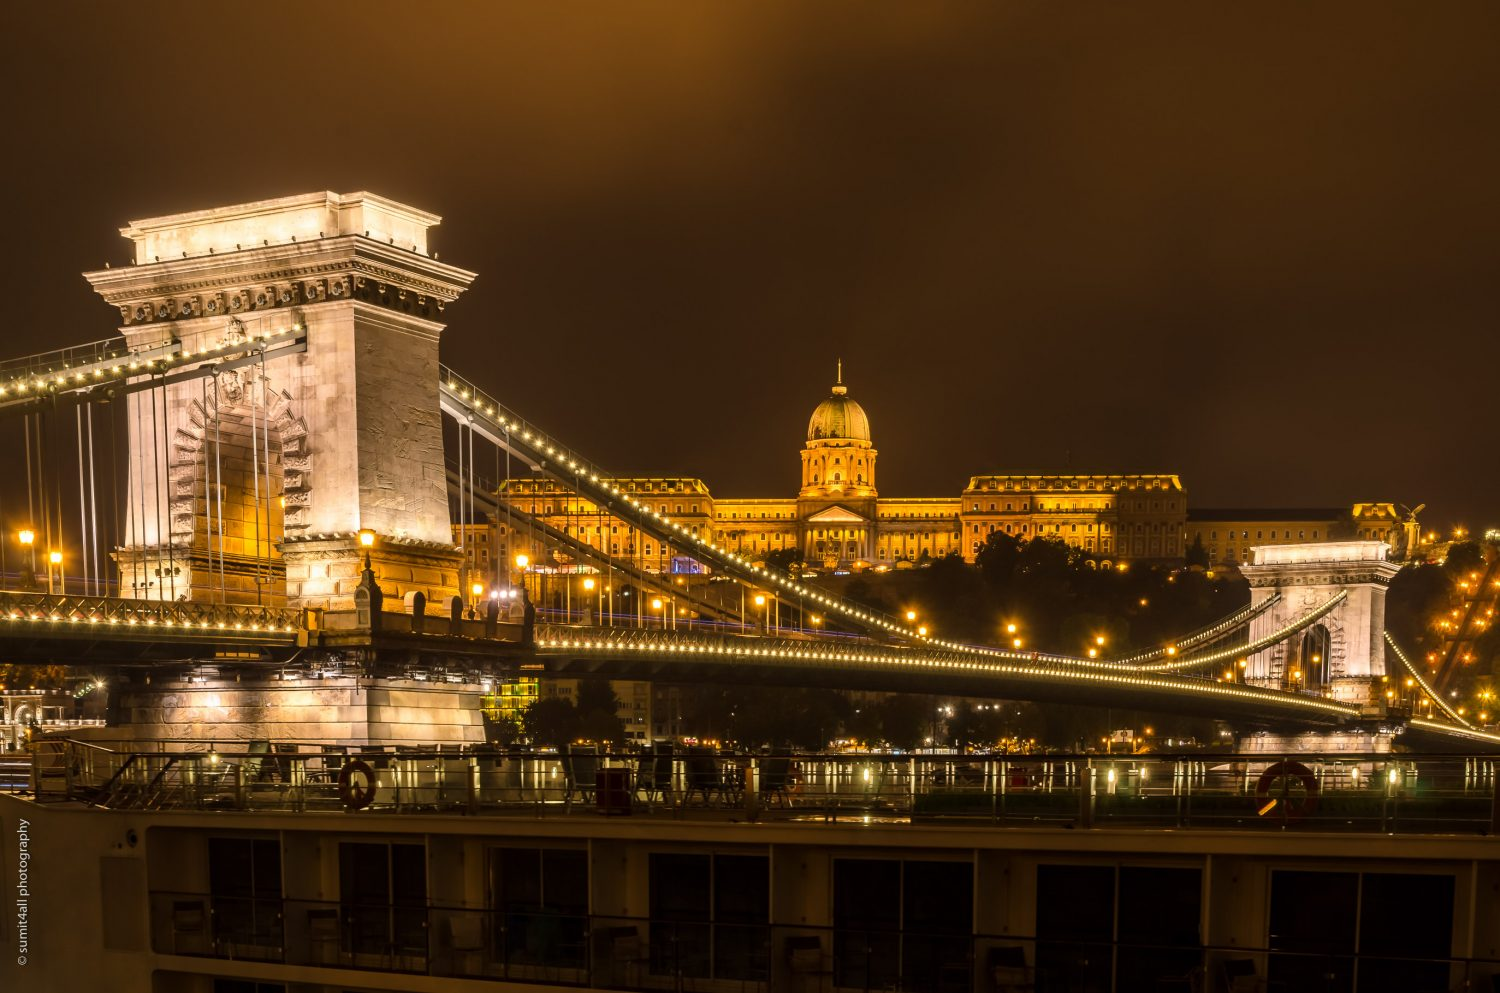 The Chain Bridge and the Buda castle lit up at night.